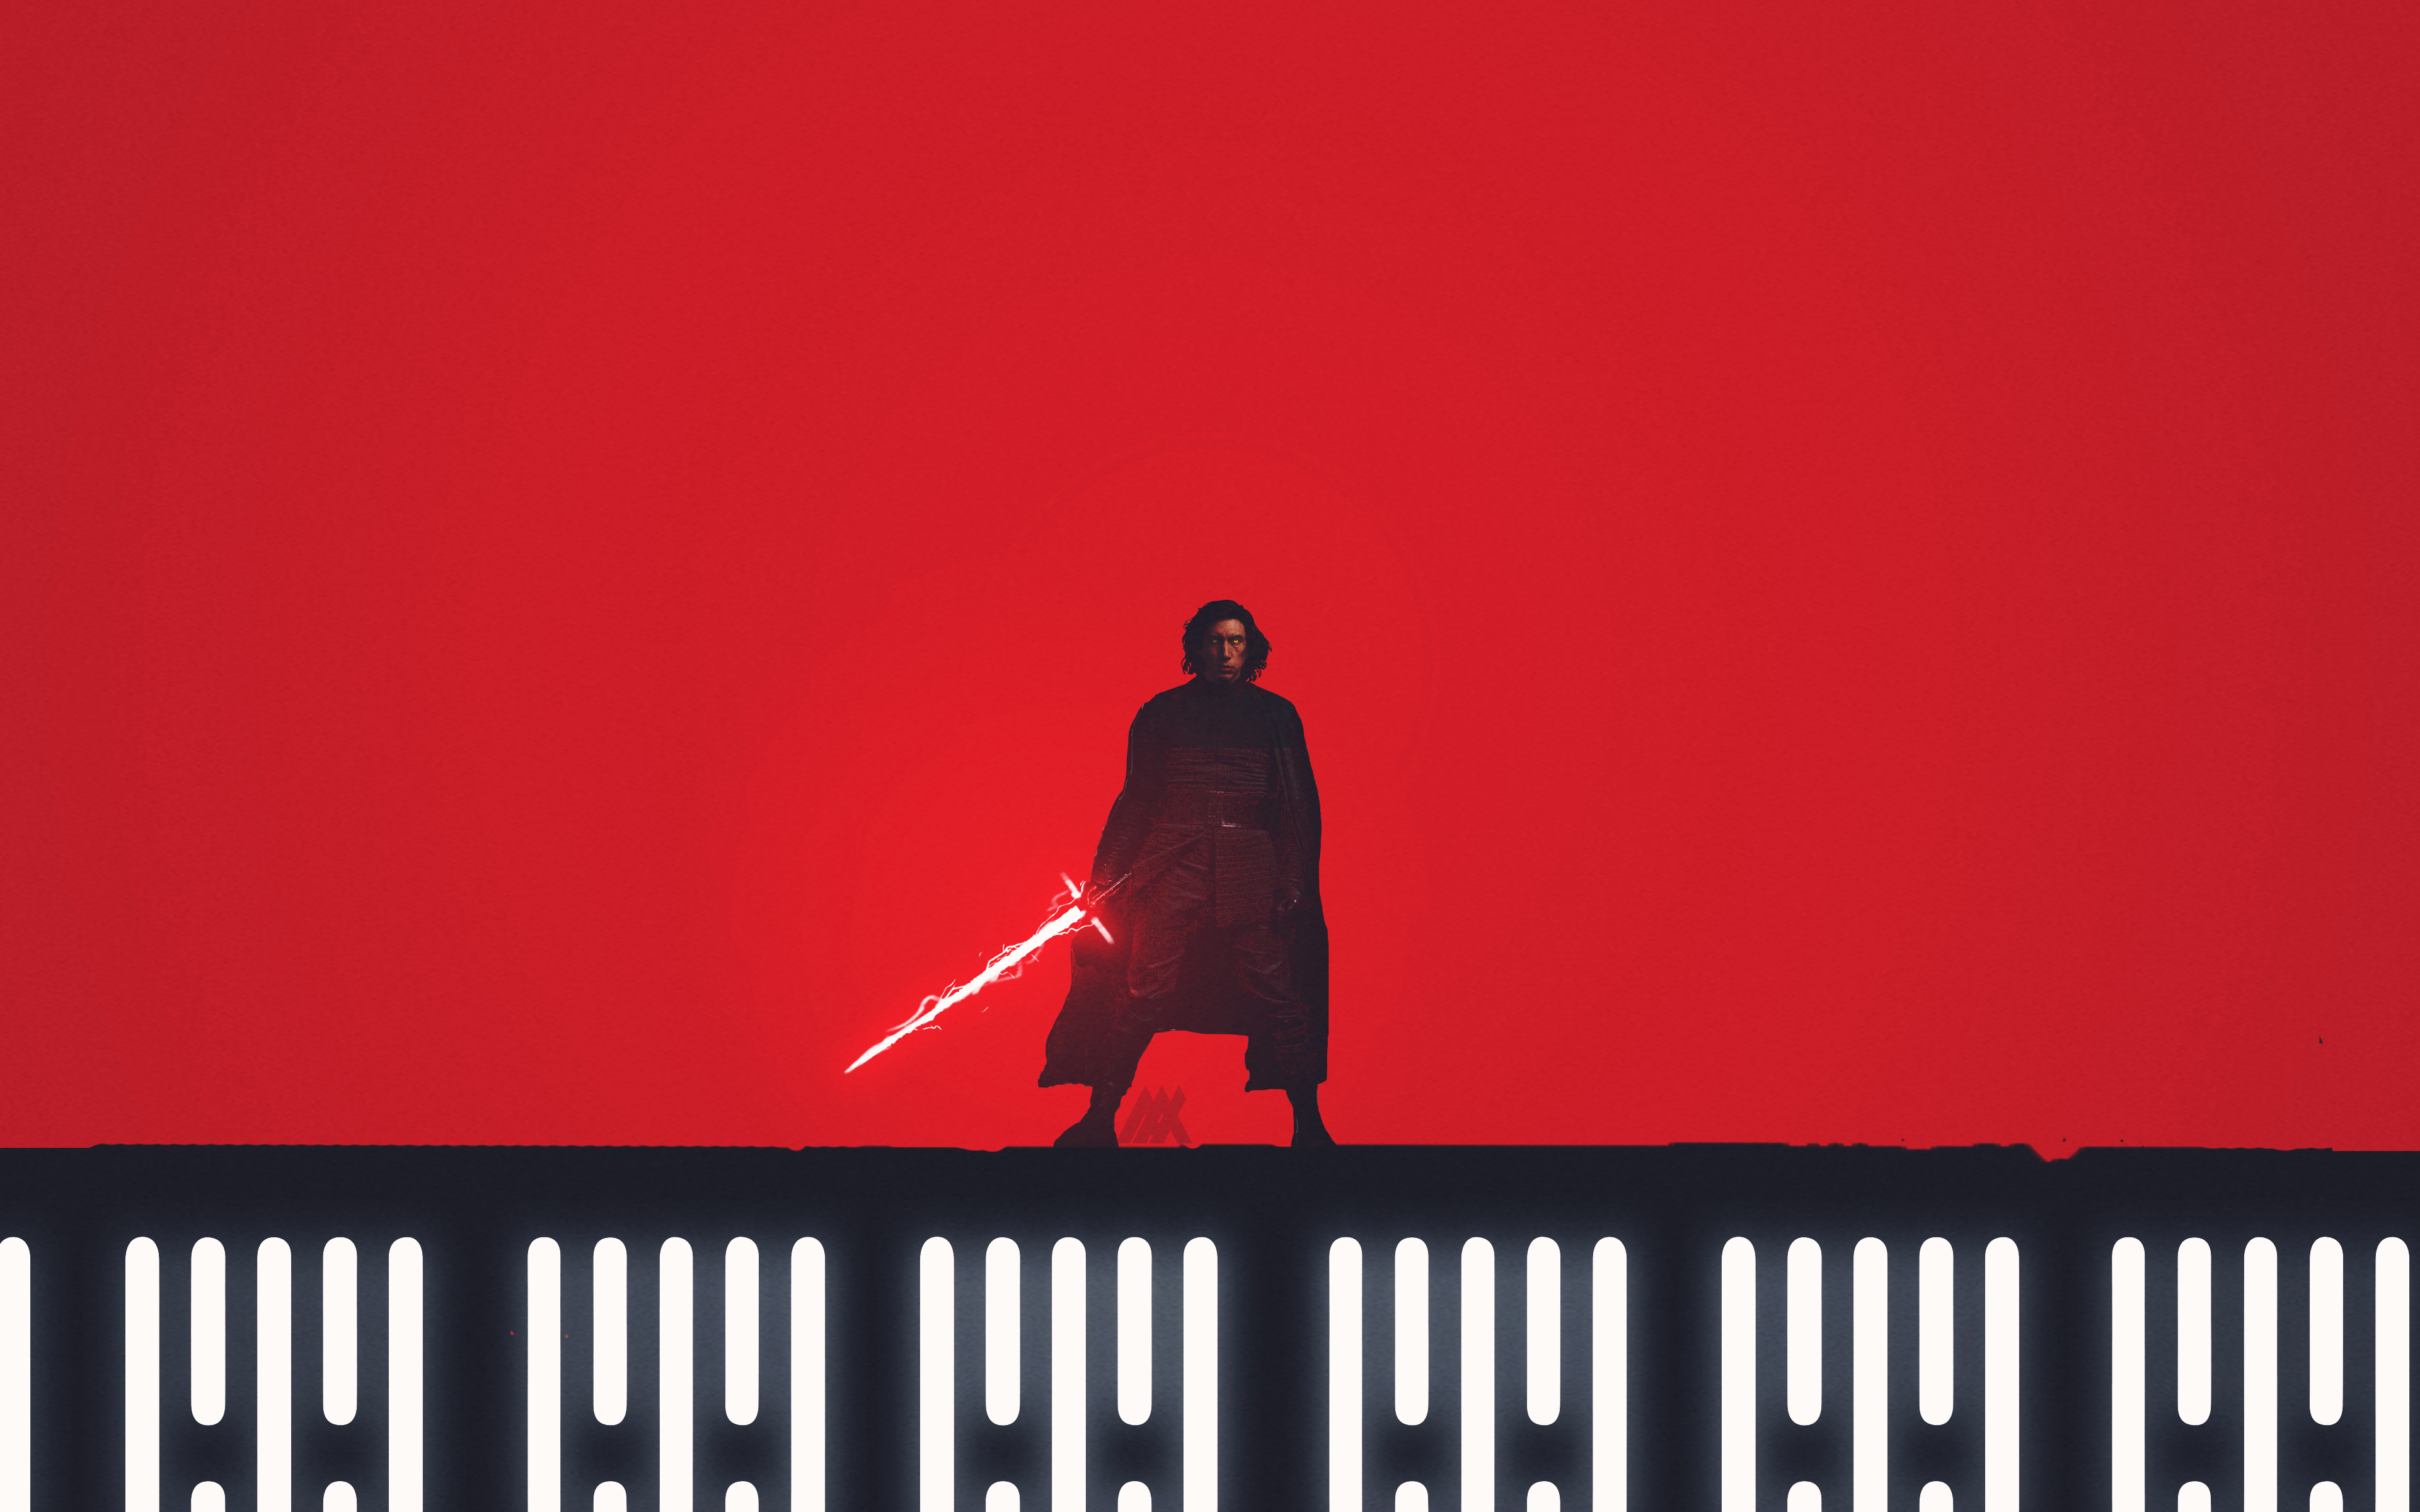 Kylo Ren Star Wars The Last Jedi Artwork 4k Wallpapers Hd Wallpapers